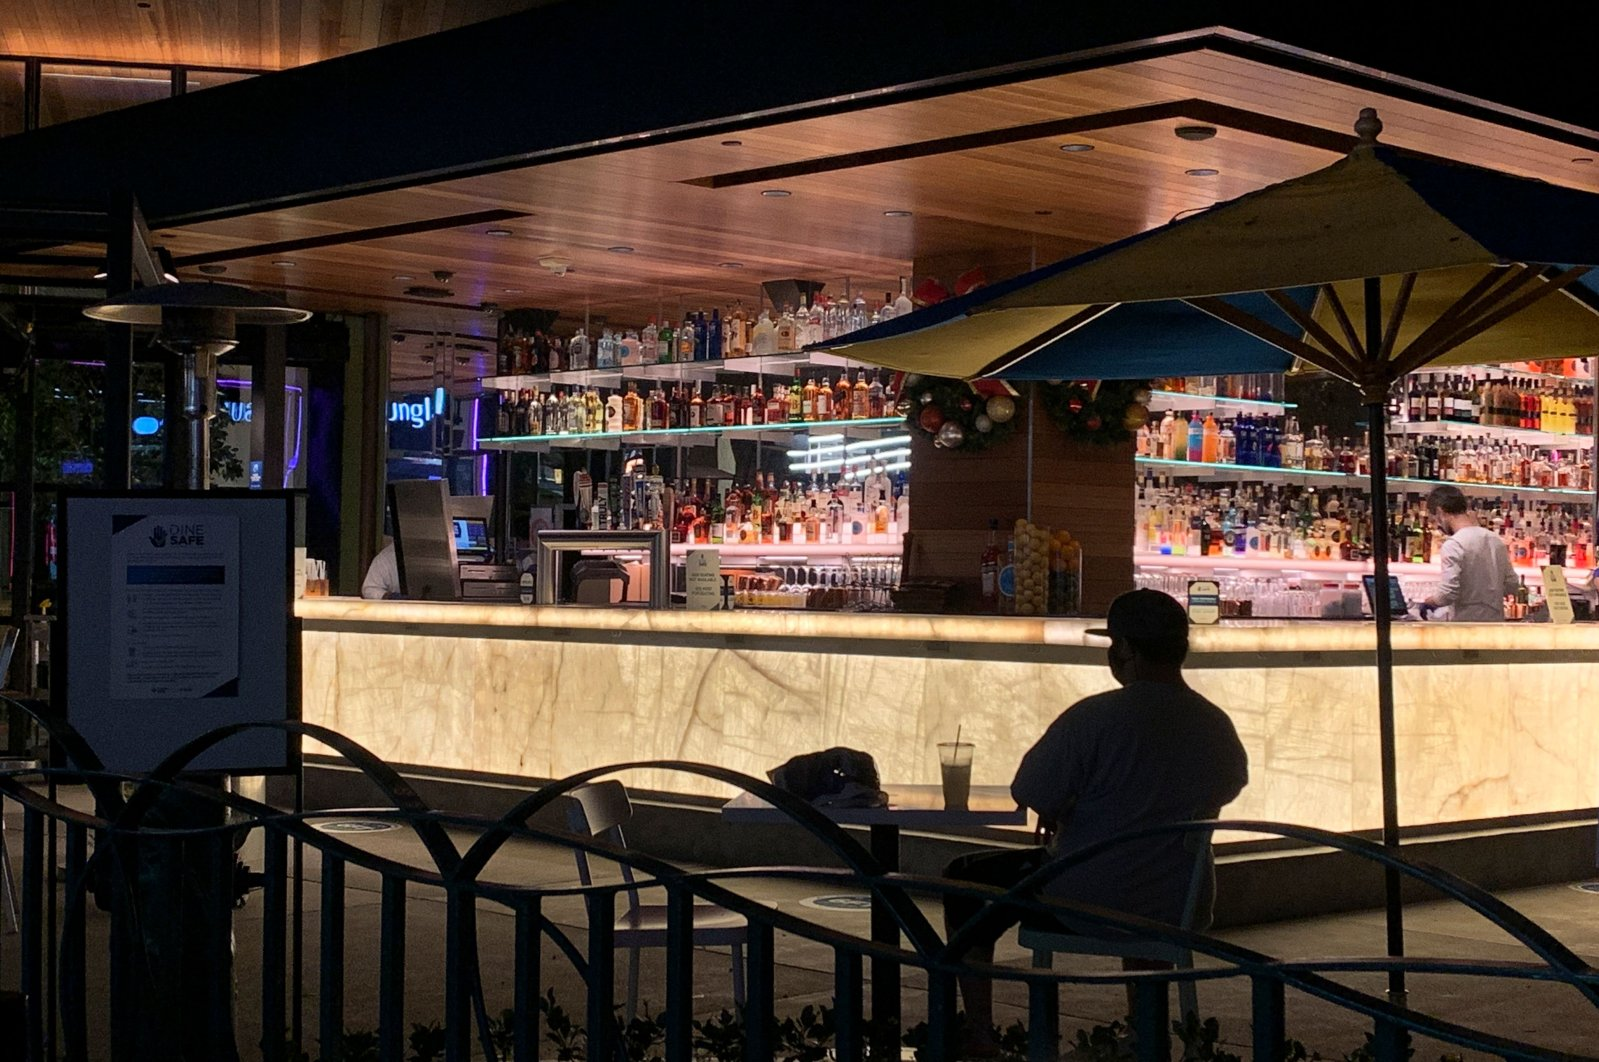 A man sits alone with his drink near the bar as people visit Disneyland where parts of the park opened for more retail and dining as an extension of the Downtown Disney District in Anaheim, California, Nov. 19, 2020. (AFP Photo)